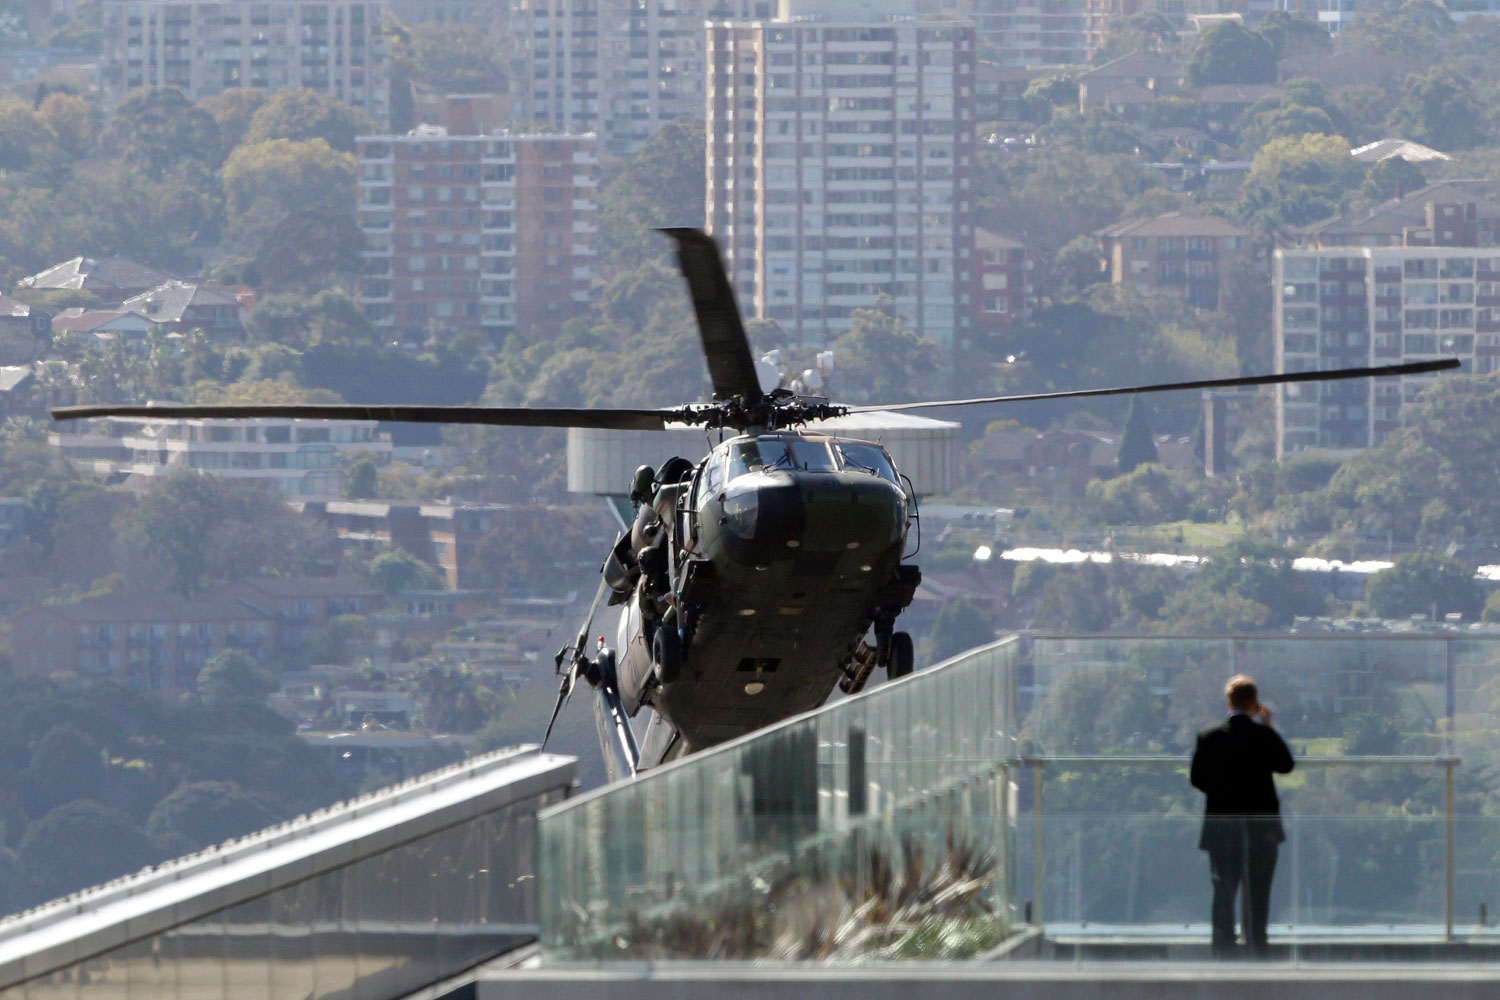 August 24, 2011. A man watches an Australian Army Blackhawk popping up between buildings during counter terrorism exercises over the Central Business District in Sydney, Australia, Wednesday.